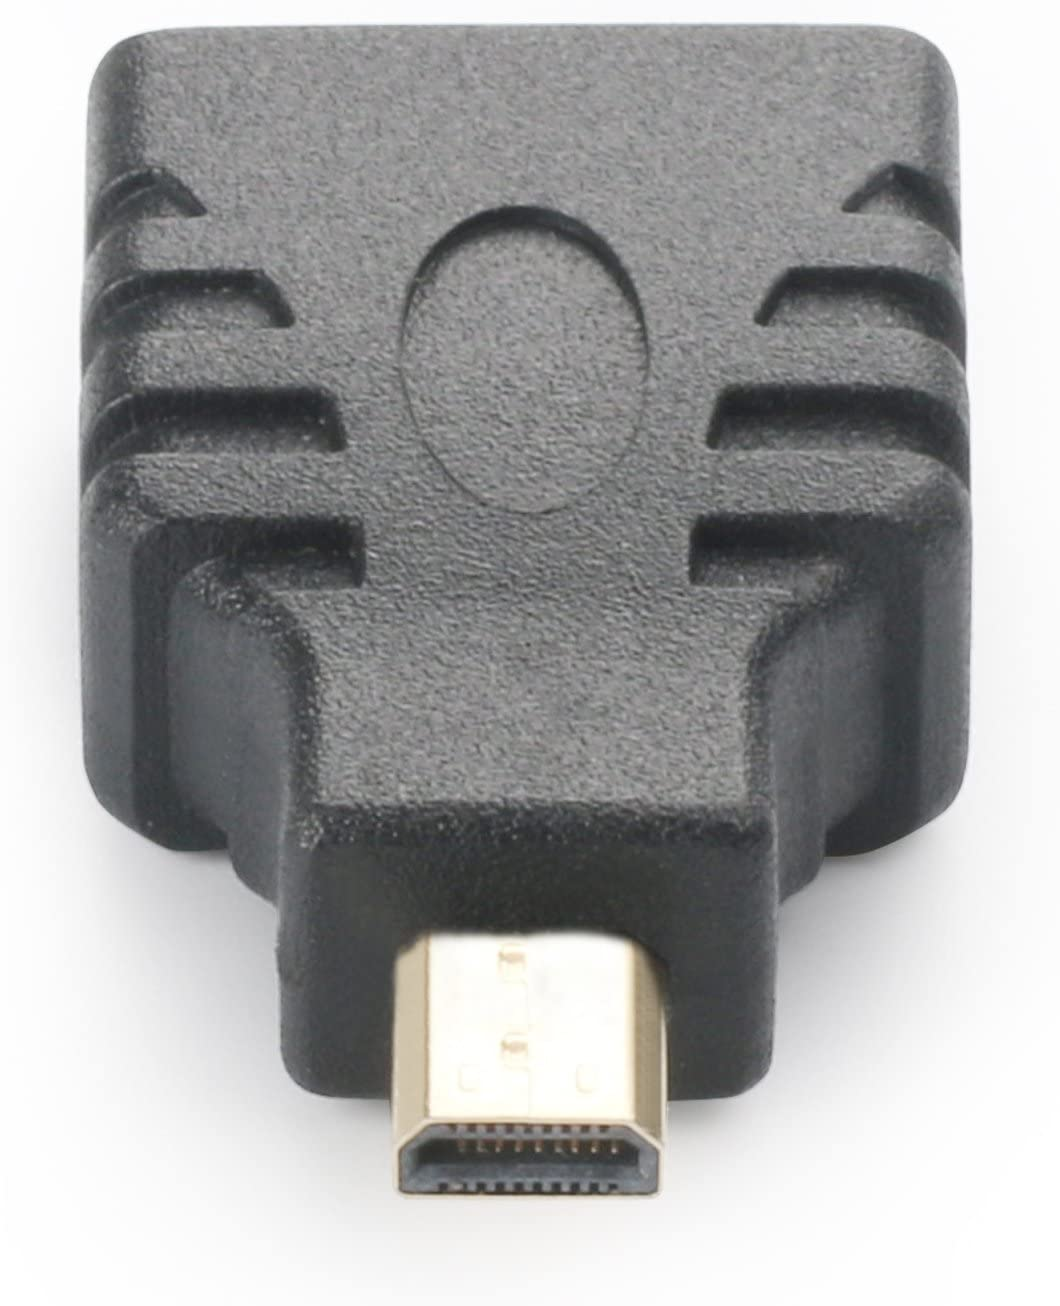 HDMI Connector Male to Female Tainston Micro HDMI Adapter 2 Pack